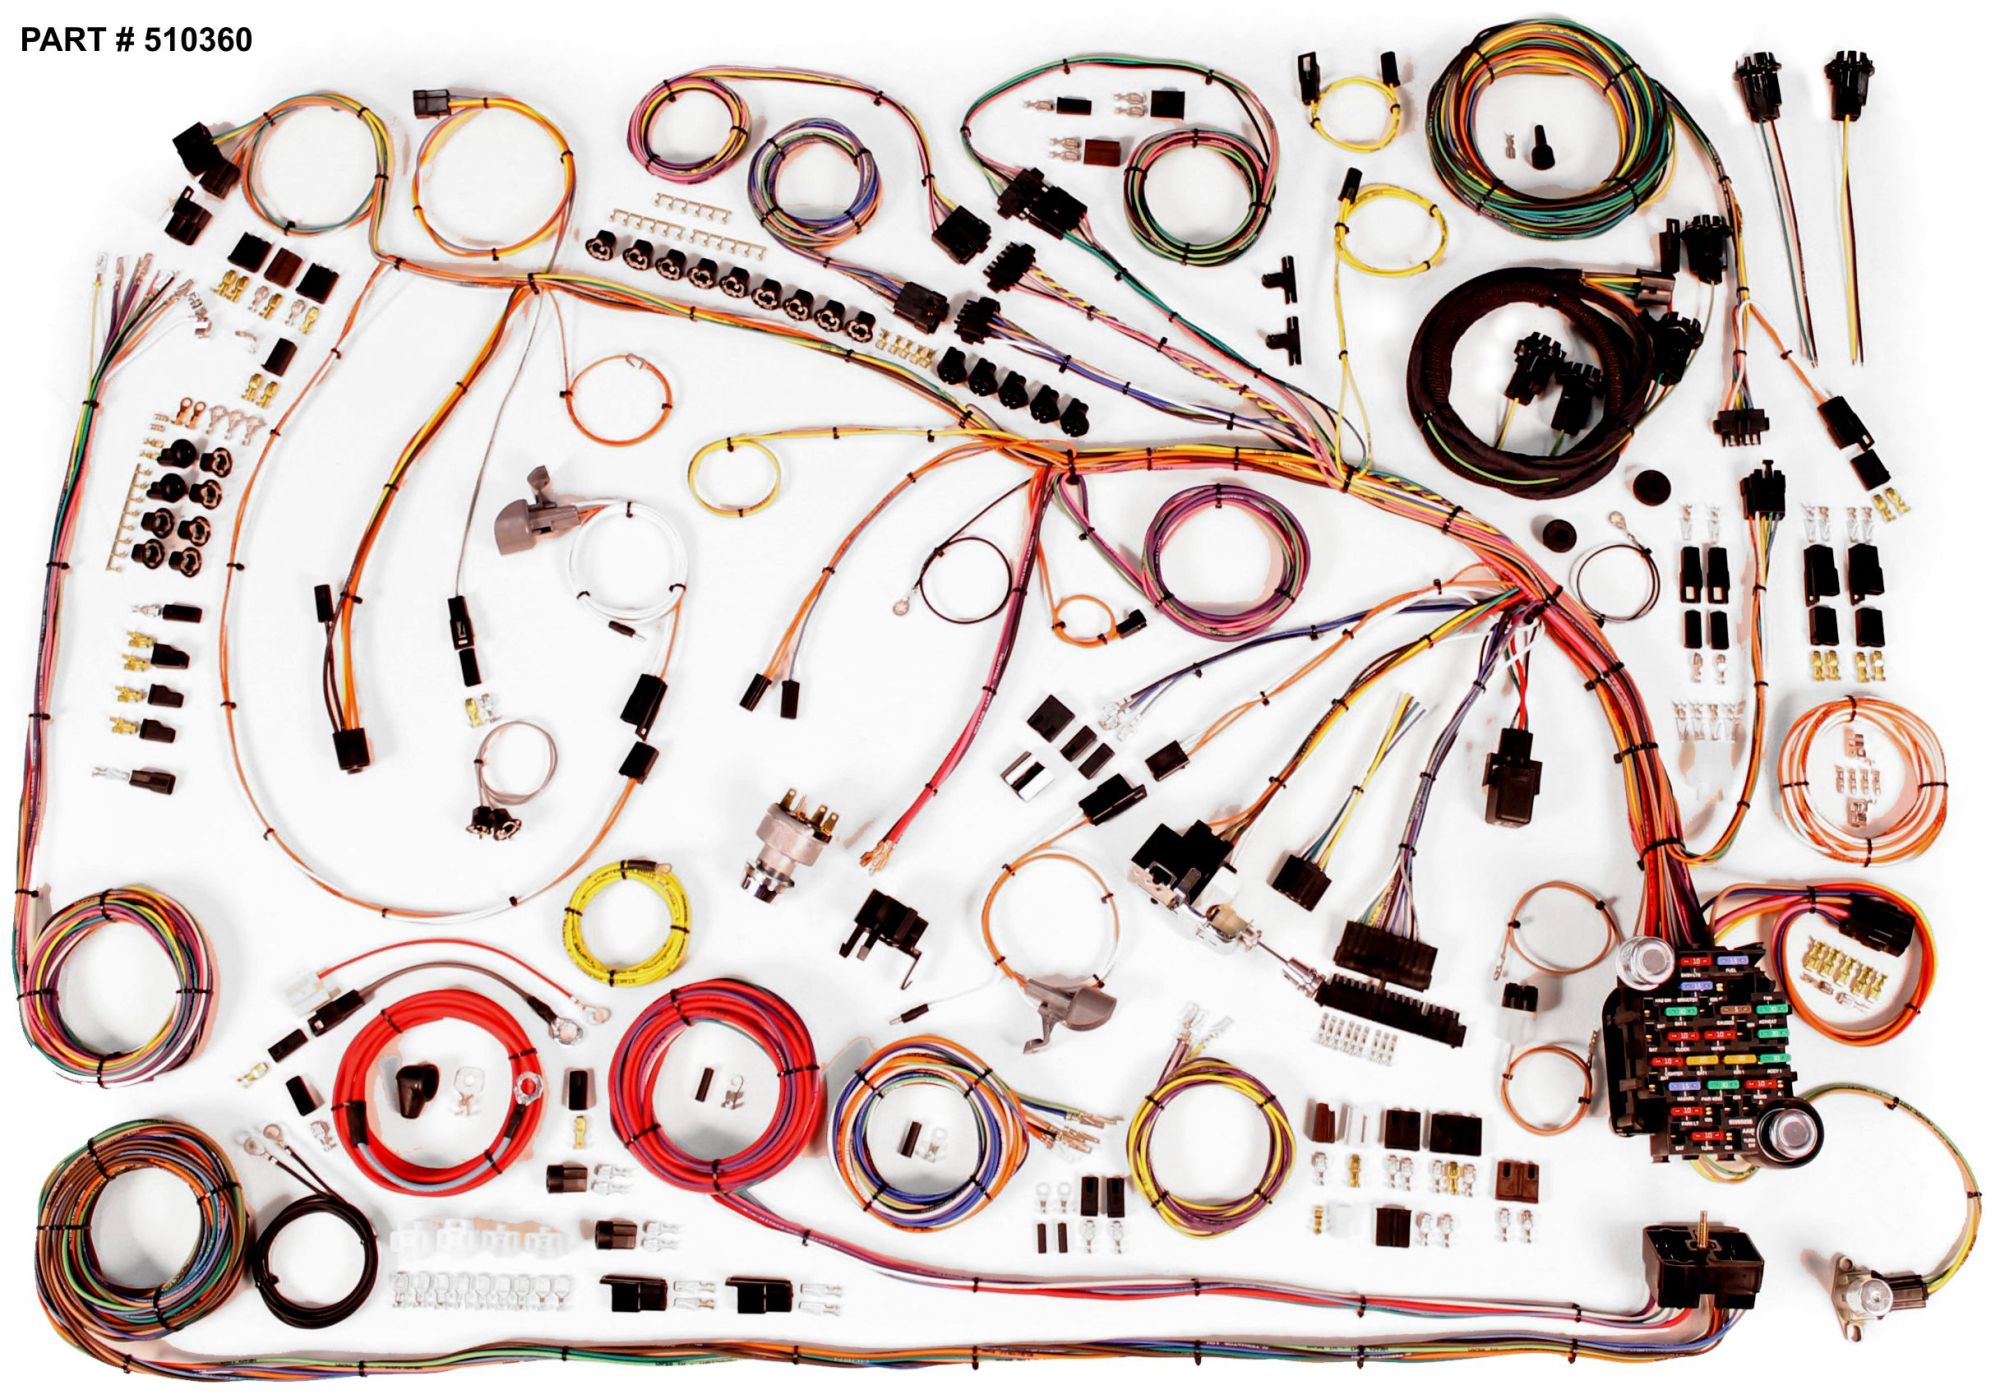 hight resolution of 1965 impala wiring harness